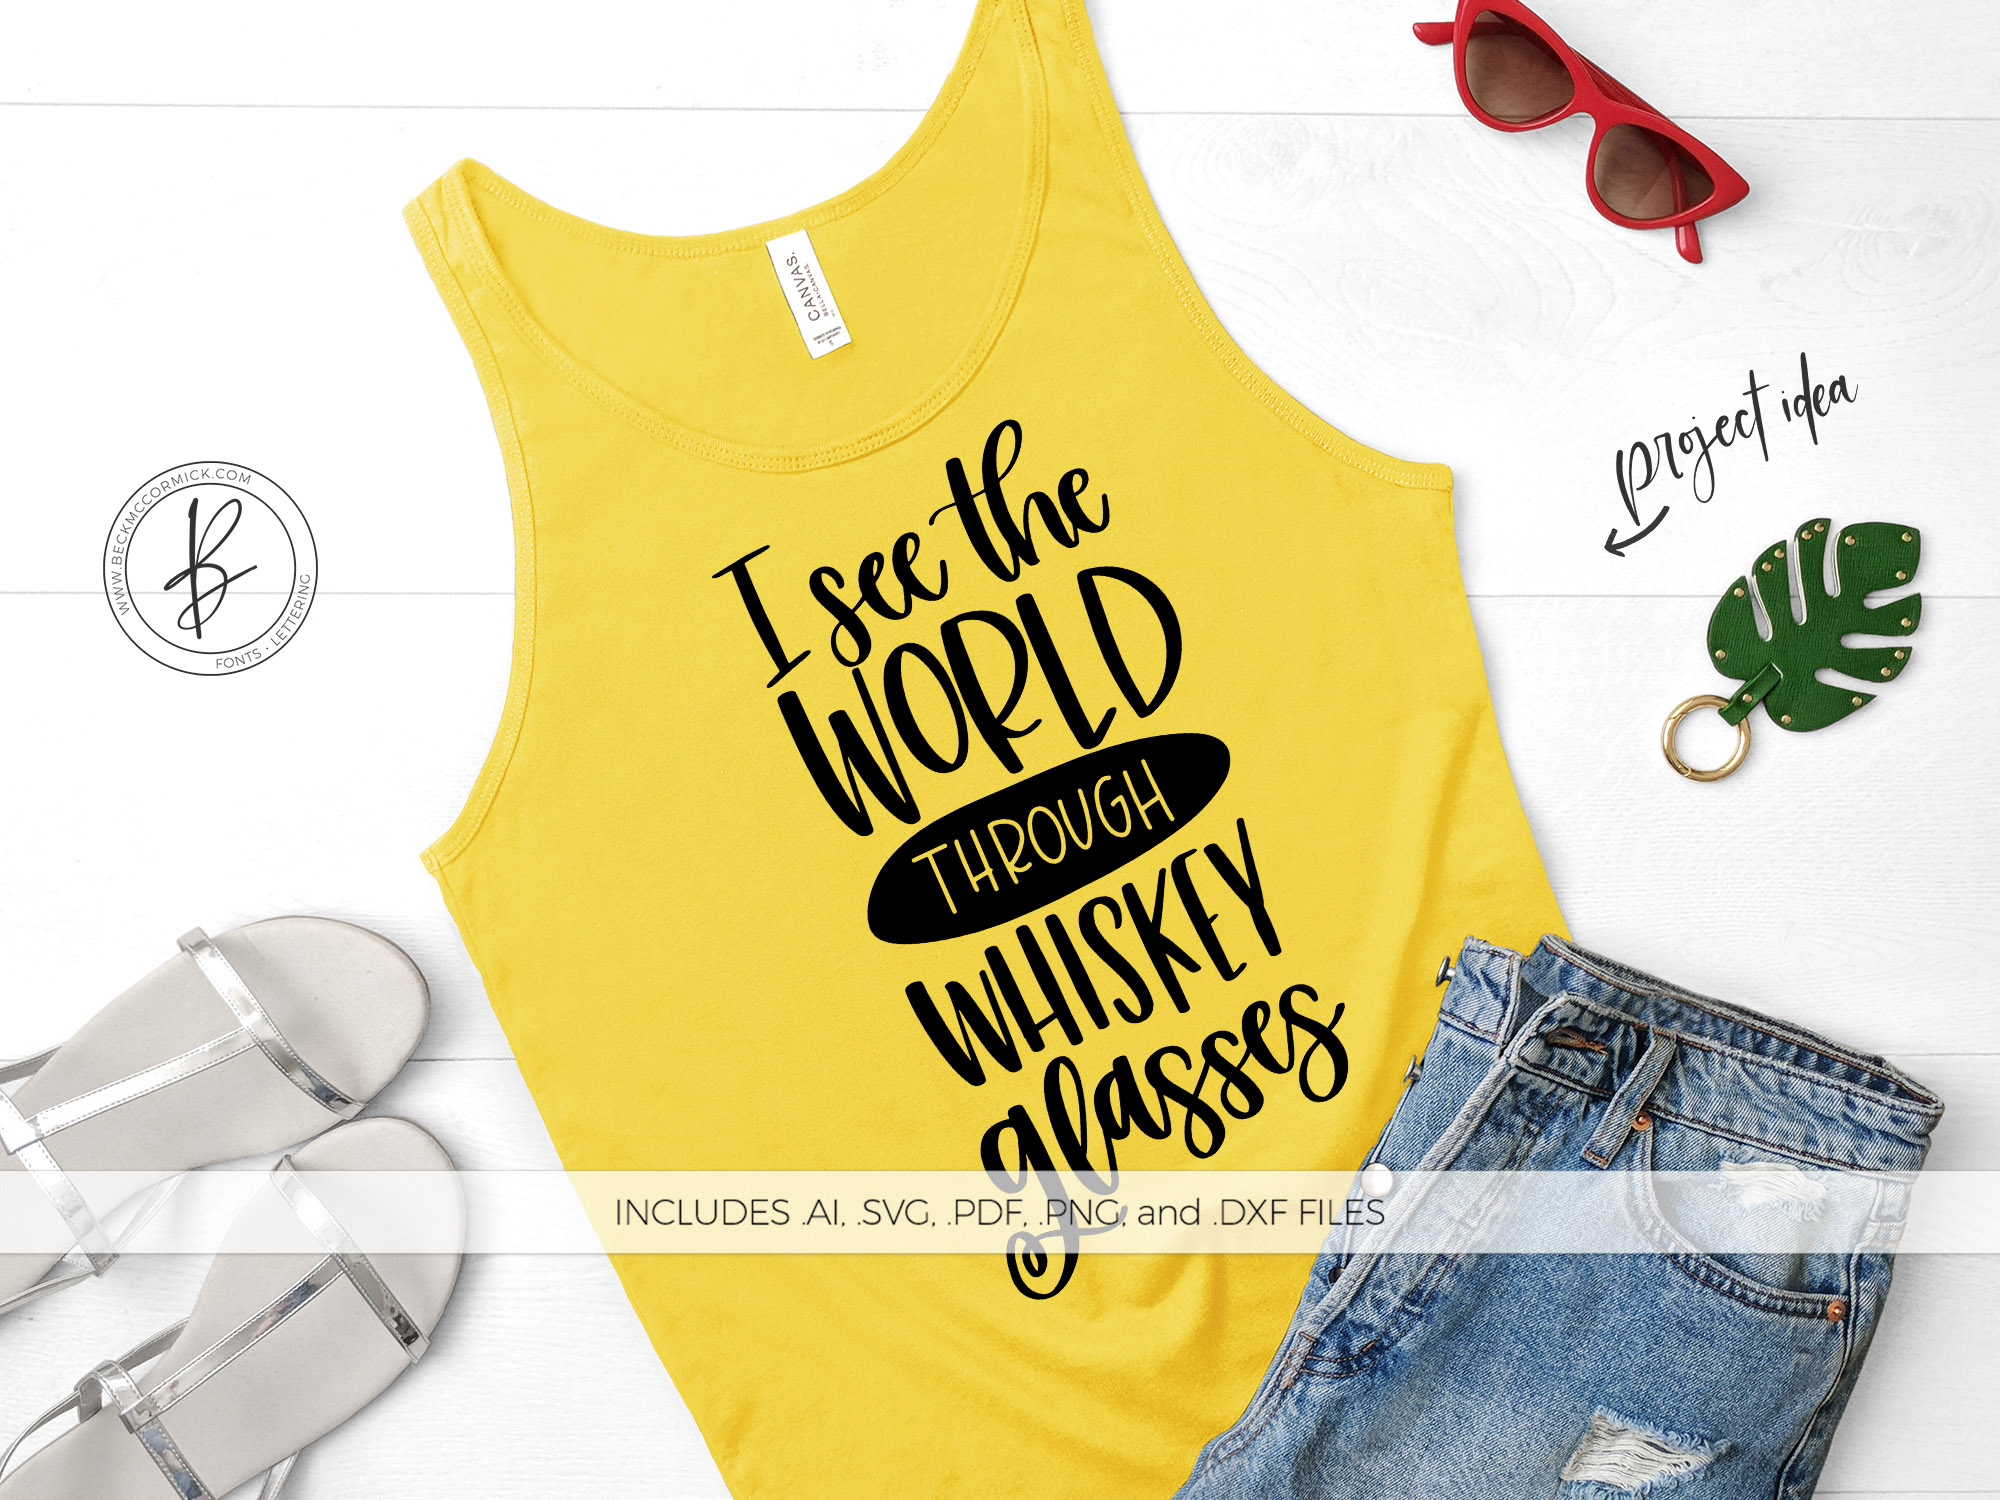 Download Free I See The World Through Whiskey Glasses Graphic By Beckmccormick for Cricut Explore, Silhouette and other cutting machines.